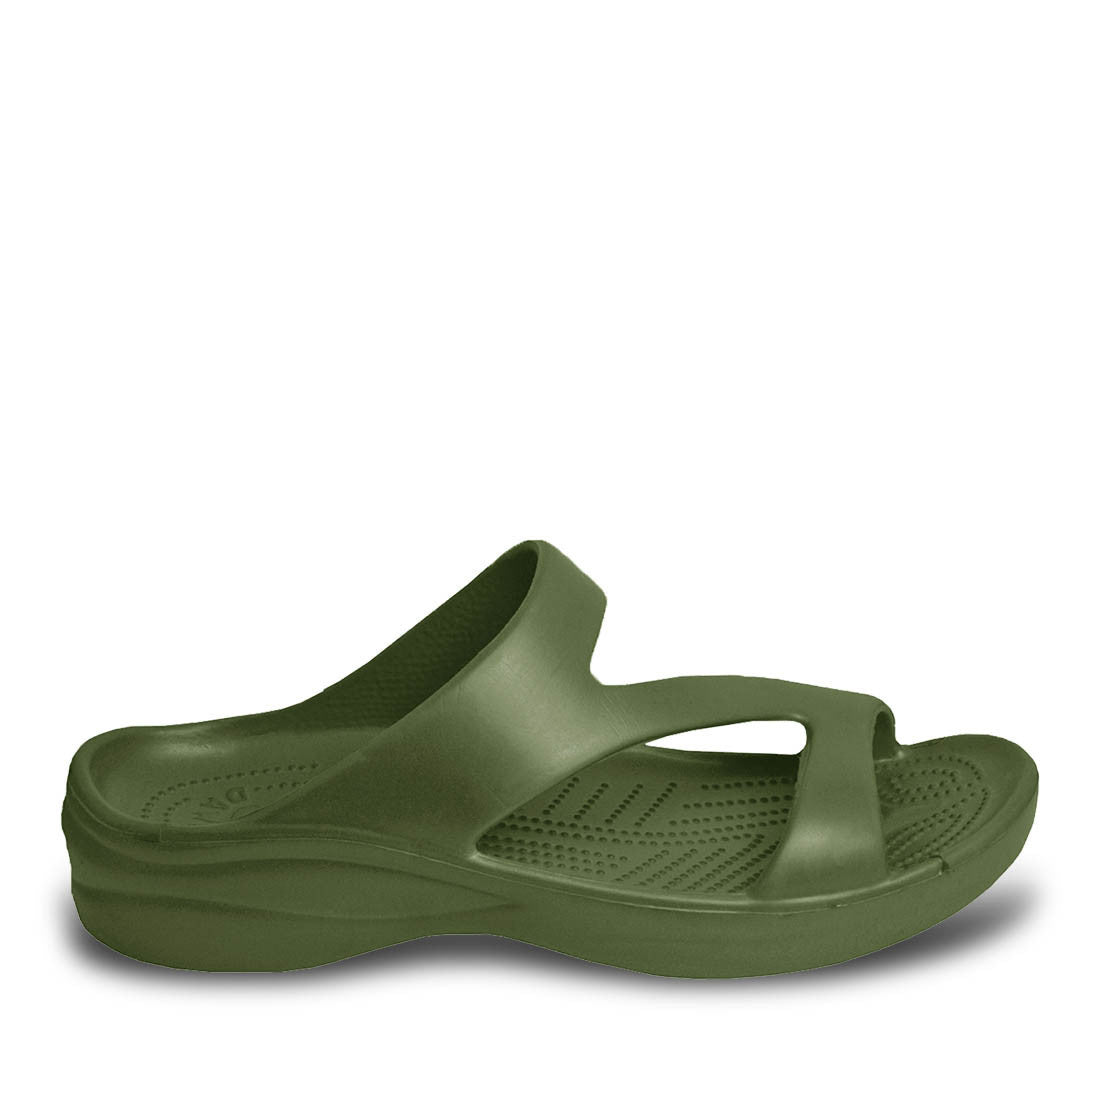 Image of Women's Z Sandals - Olive